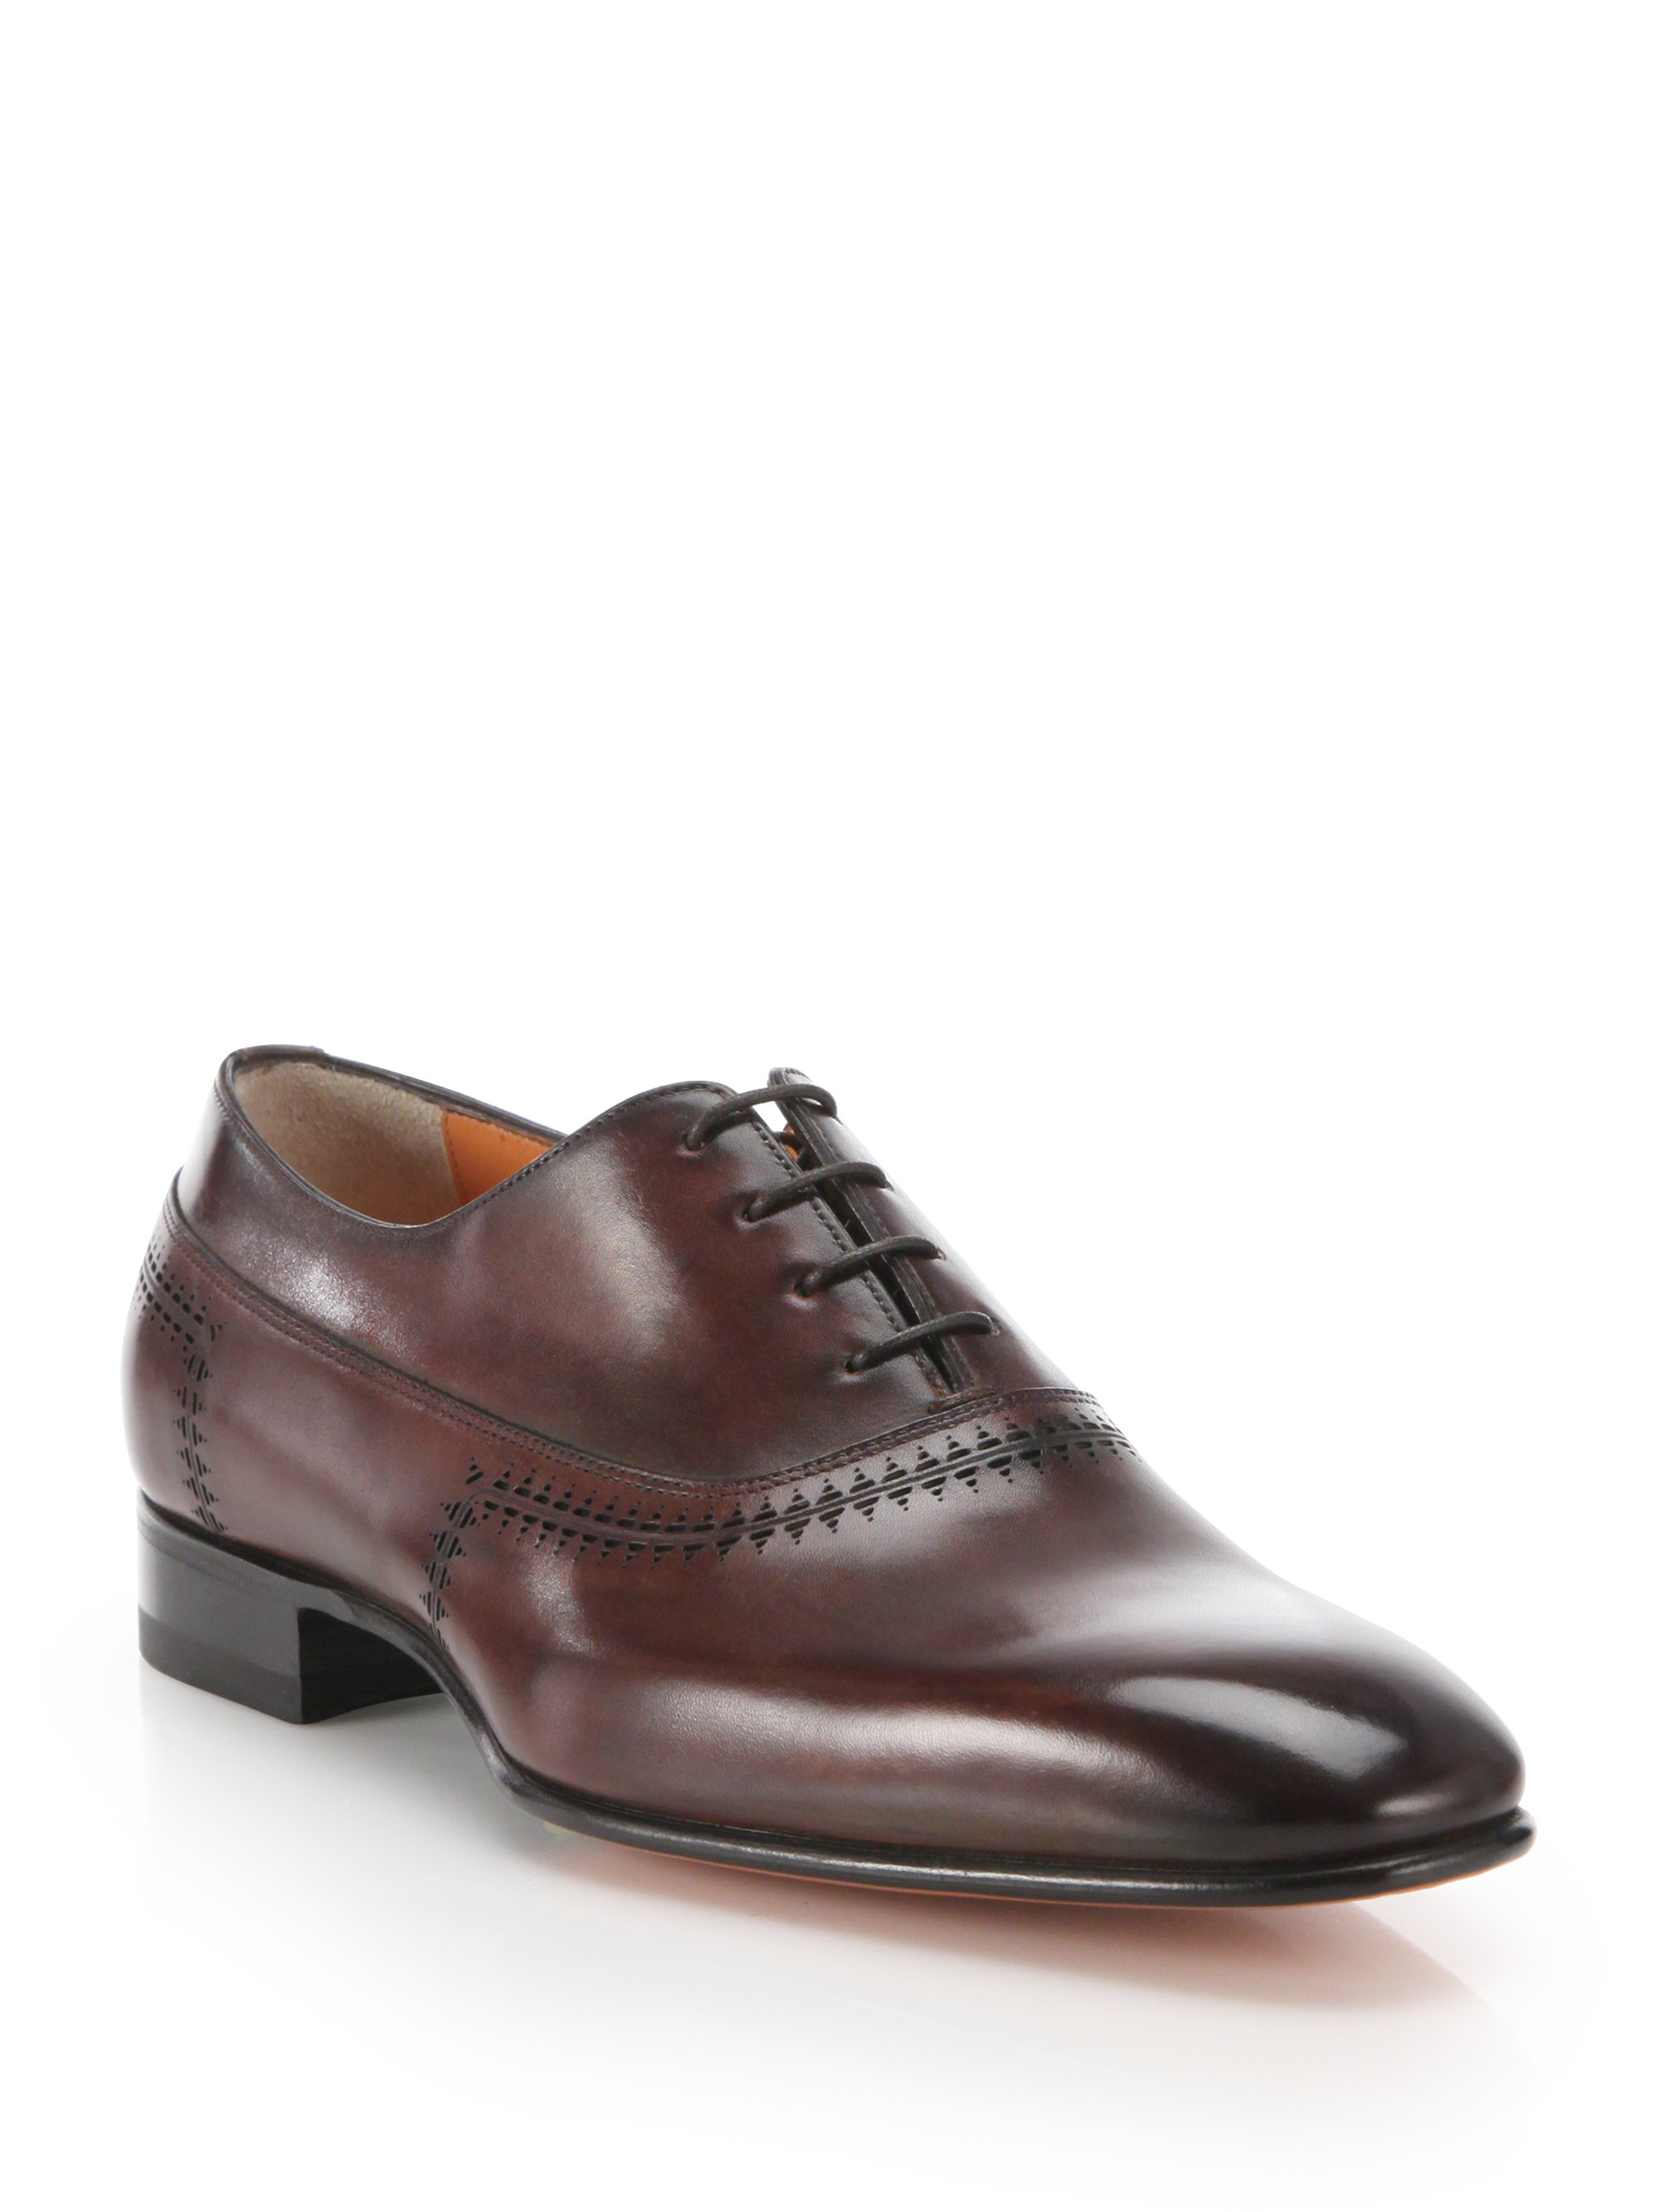 santoni antiqued leather lace up dress shoes in brown